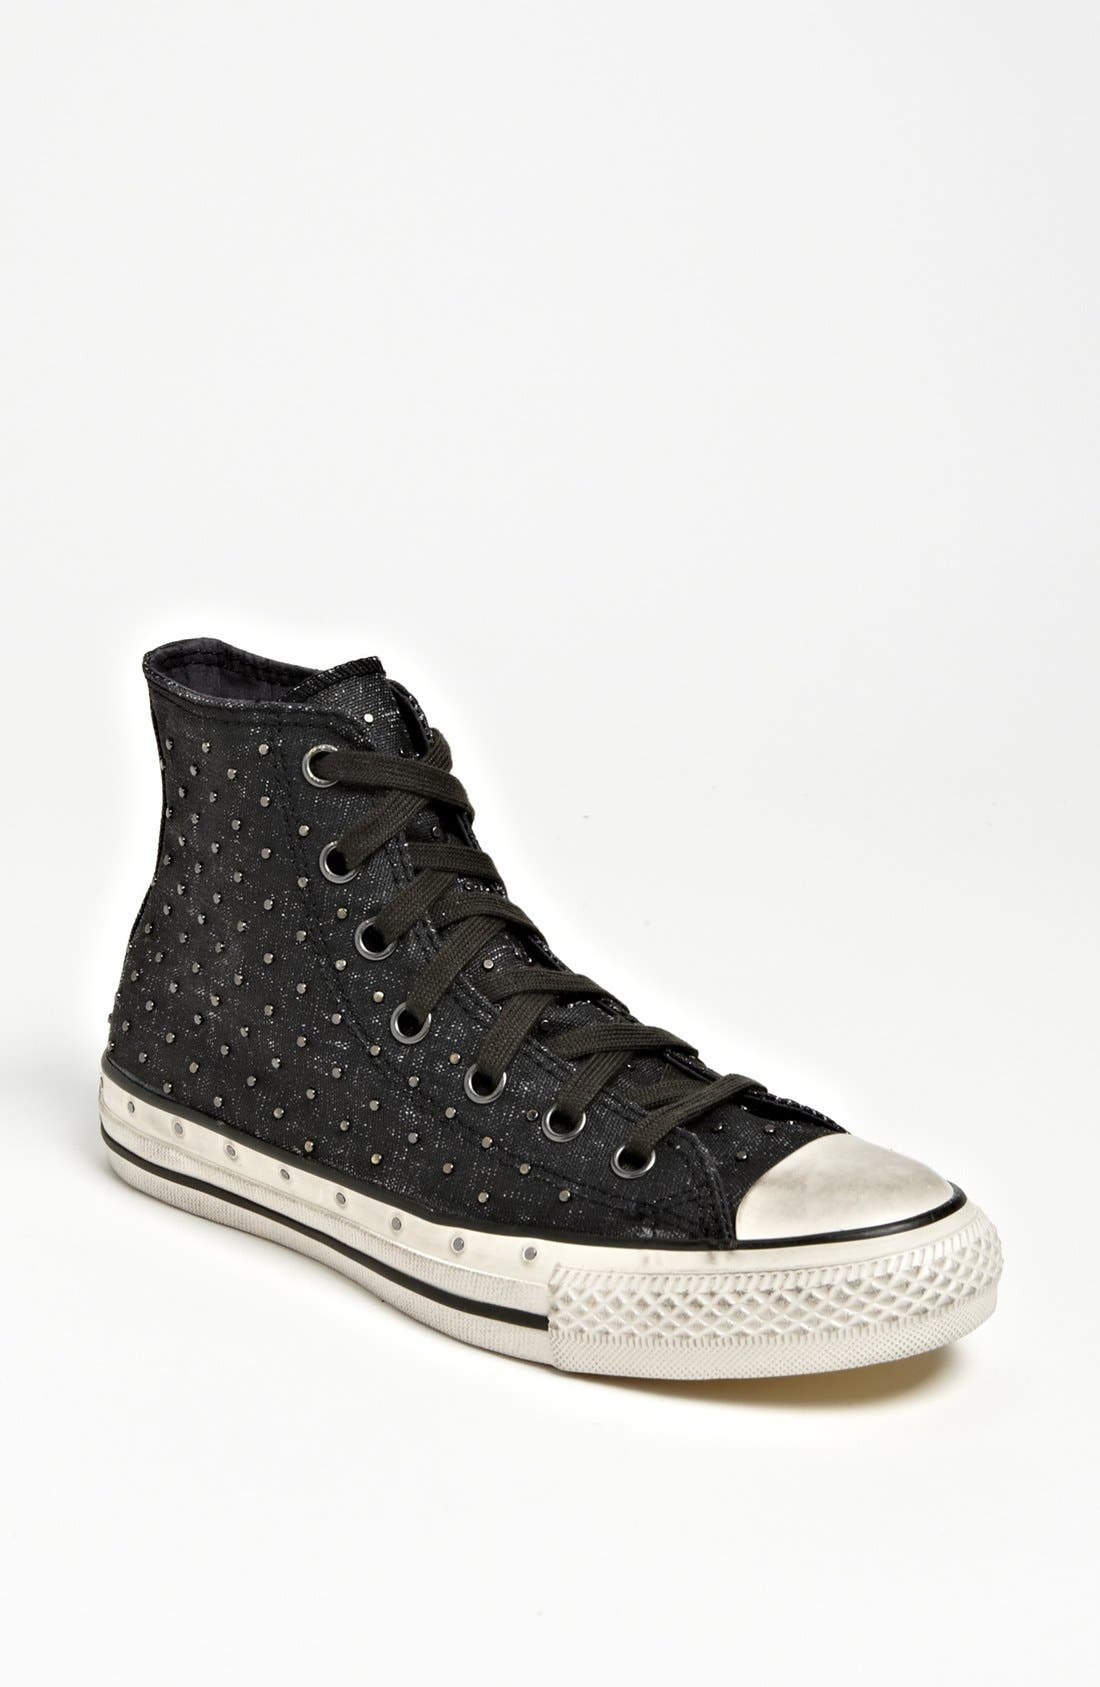 Main Image - Converse by John Varvatos 'All Star® Hi Studded' Sneaker (Women)